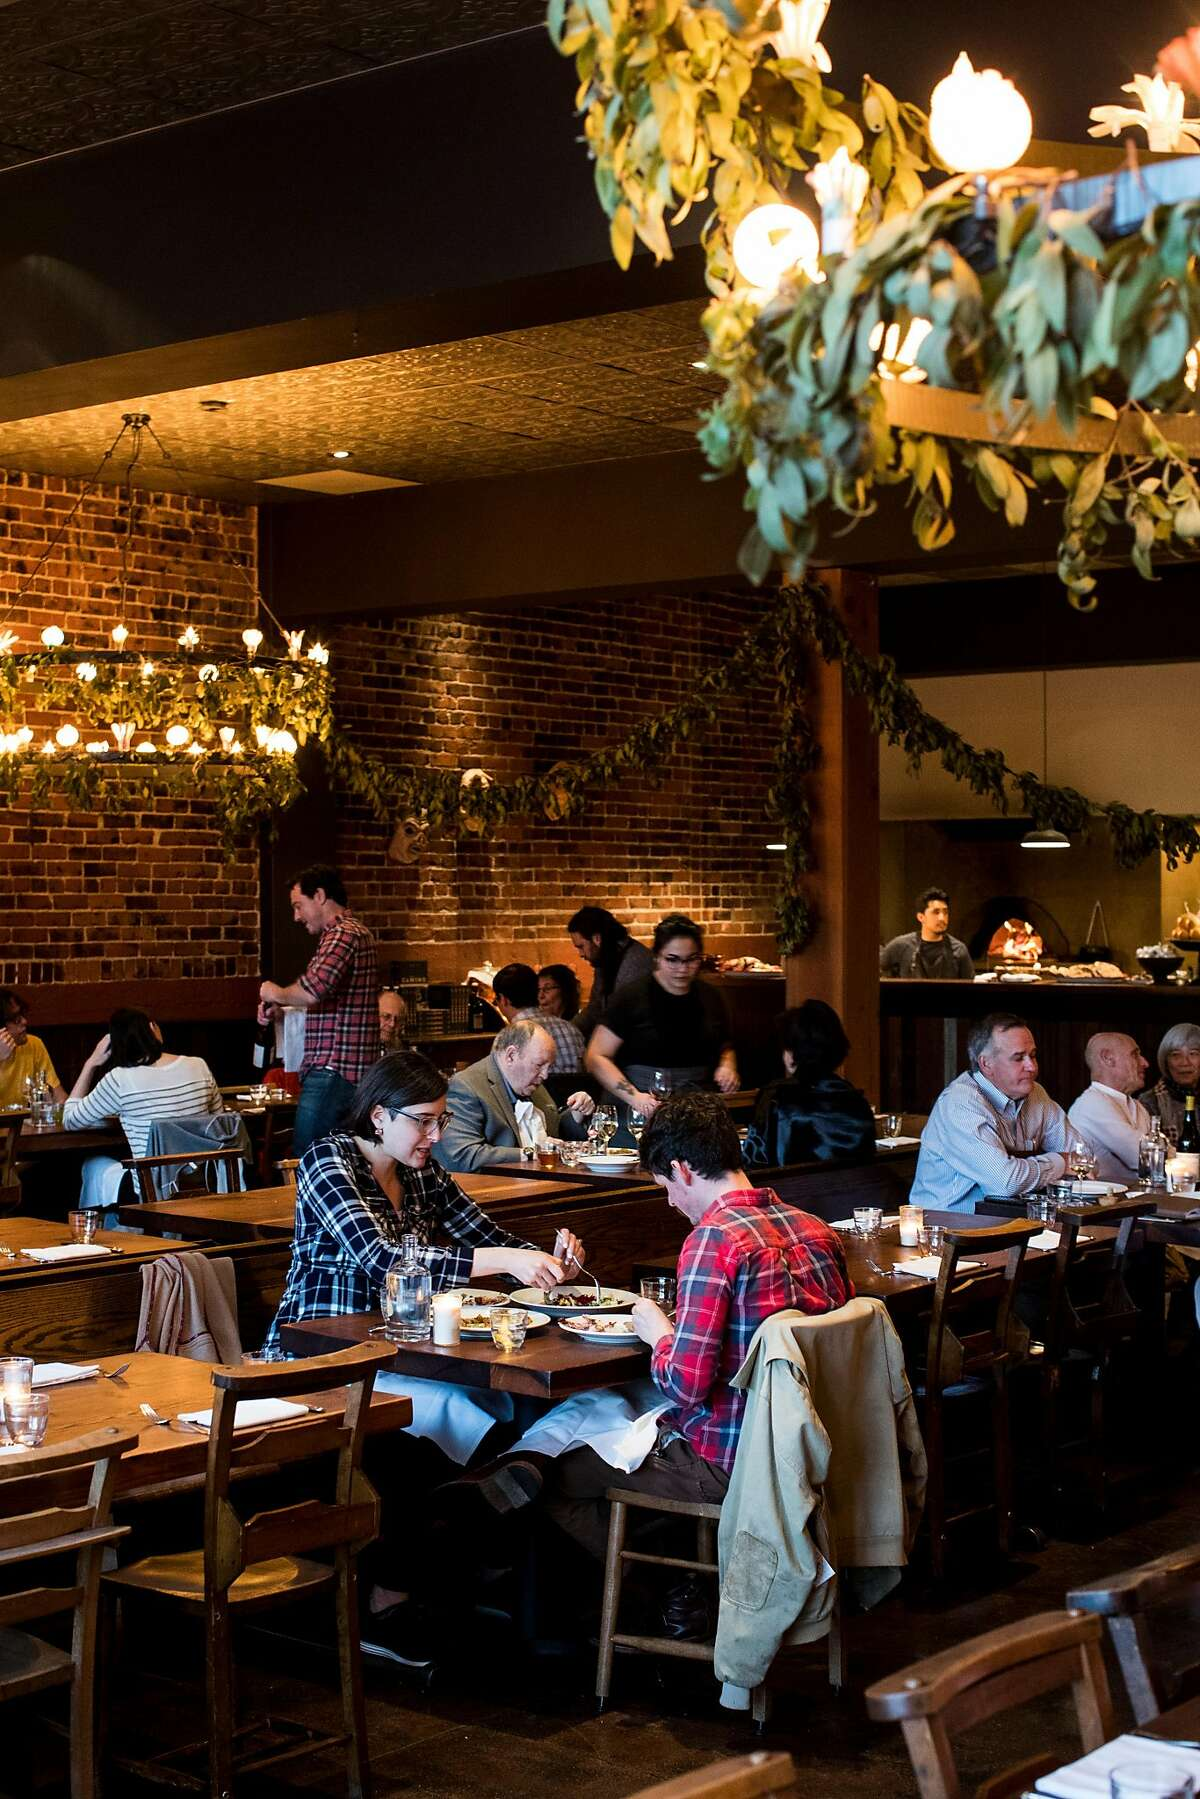 An interior view of Camino in Oakland, Calif. on Monday, March 26, 2018.